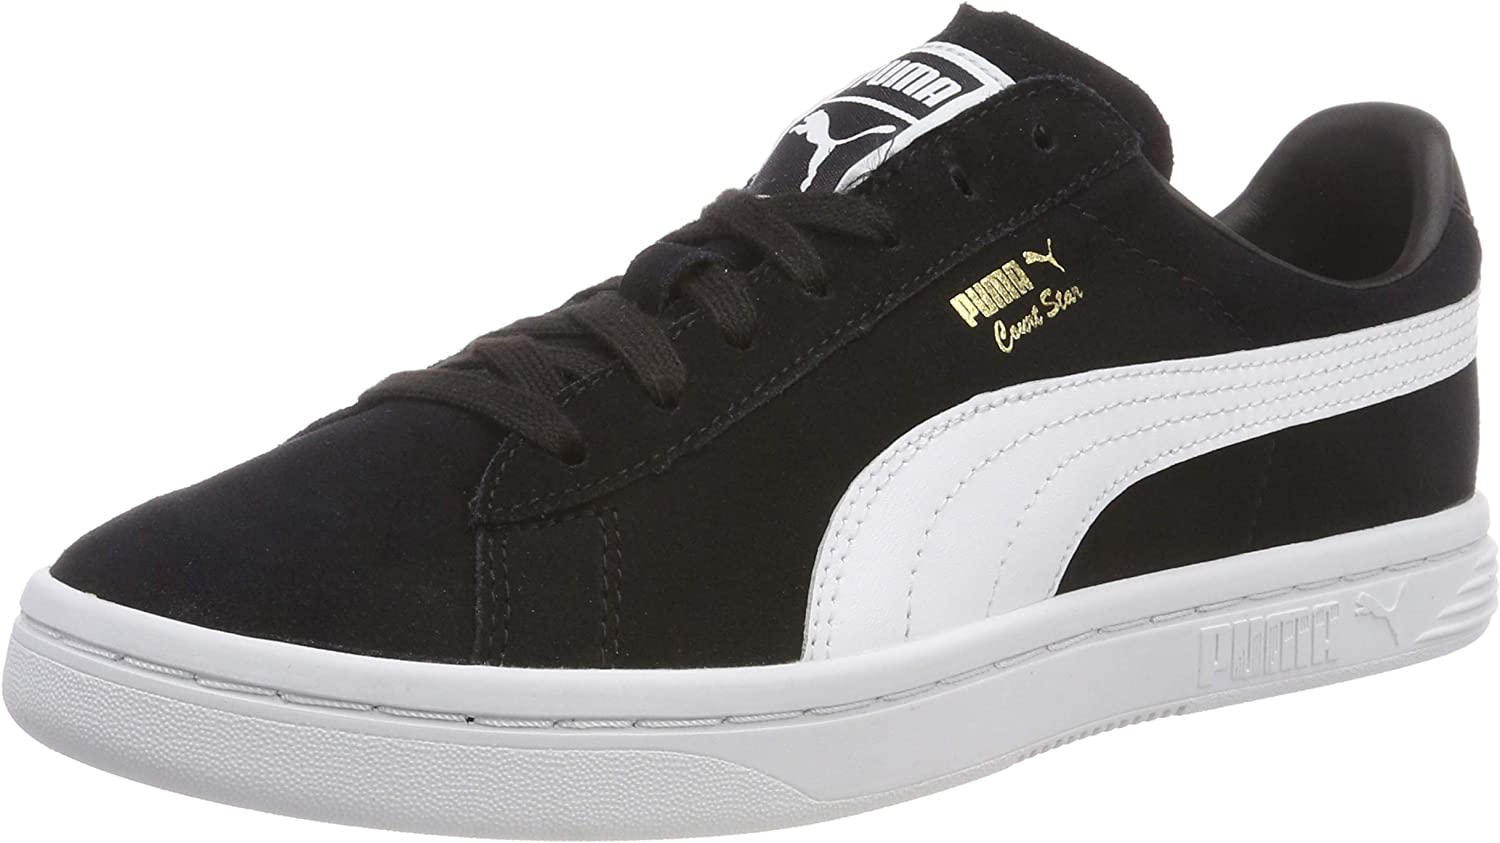 PUMA Unisex Adults' Court Star Fs Low-Top Sneakers Black